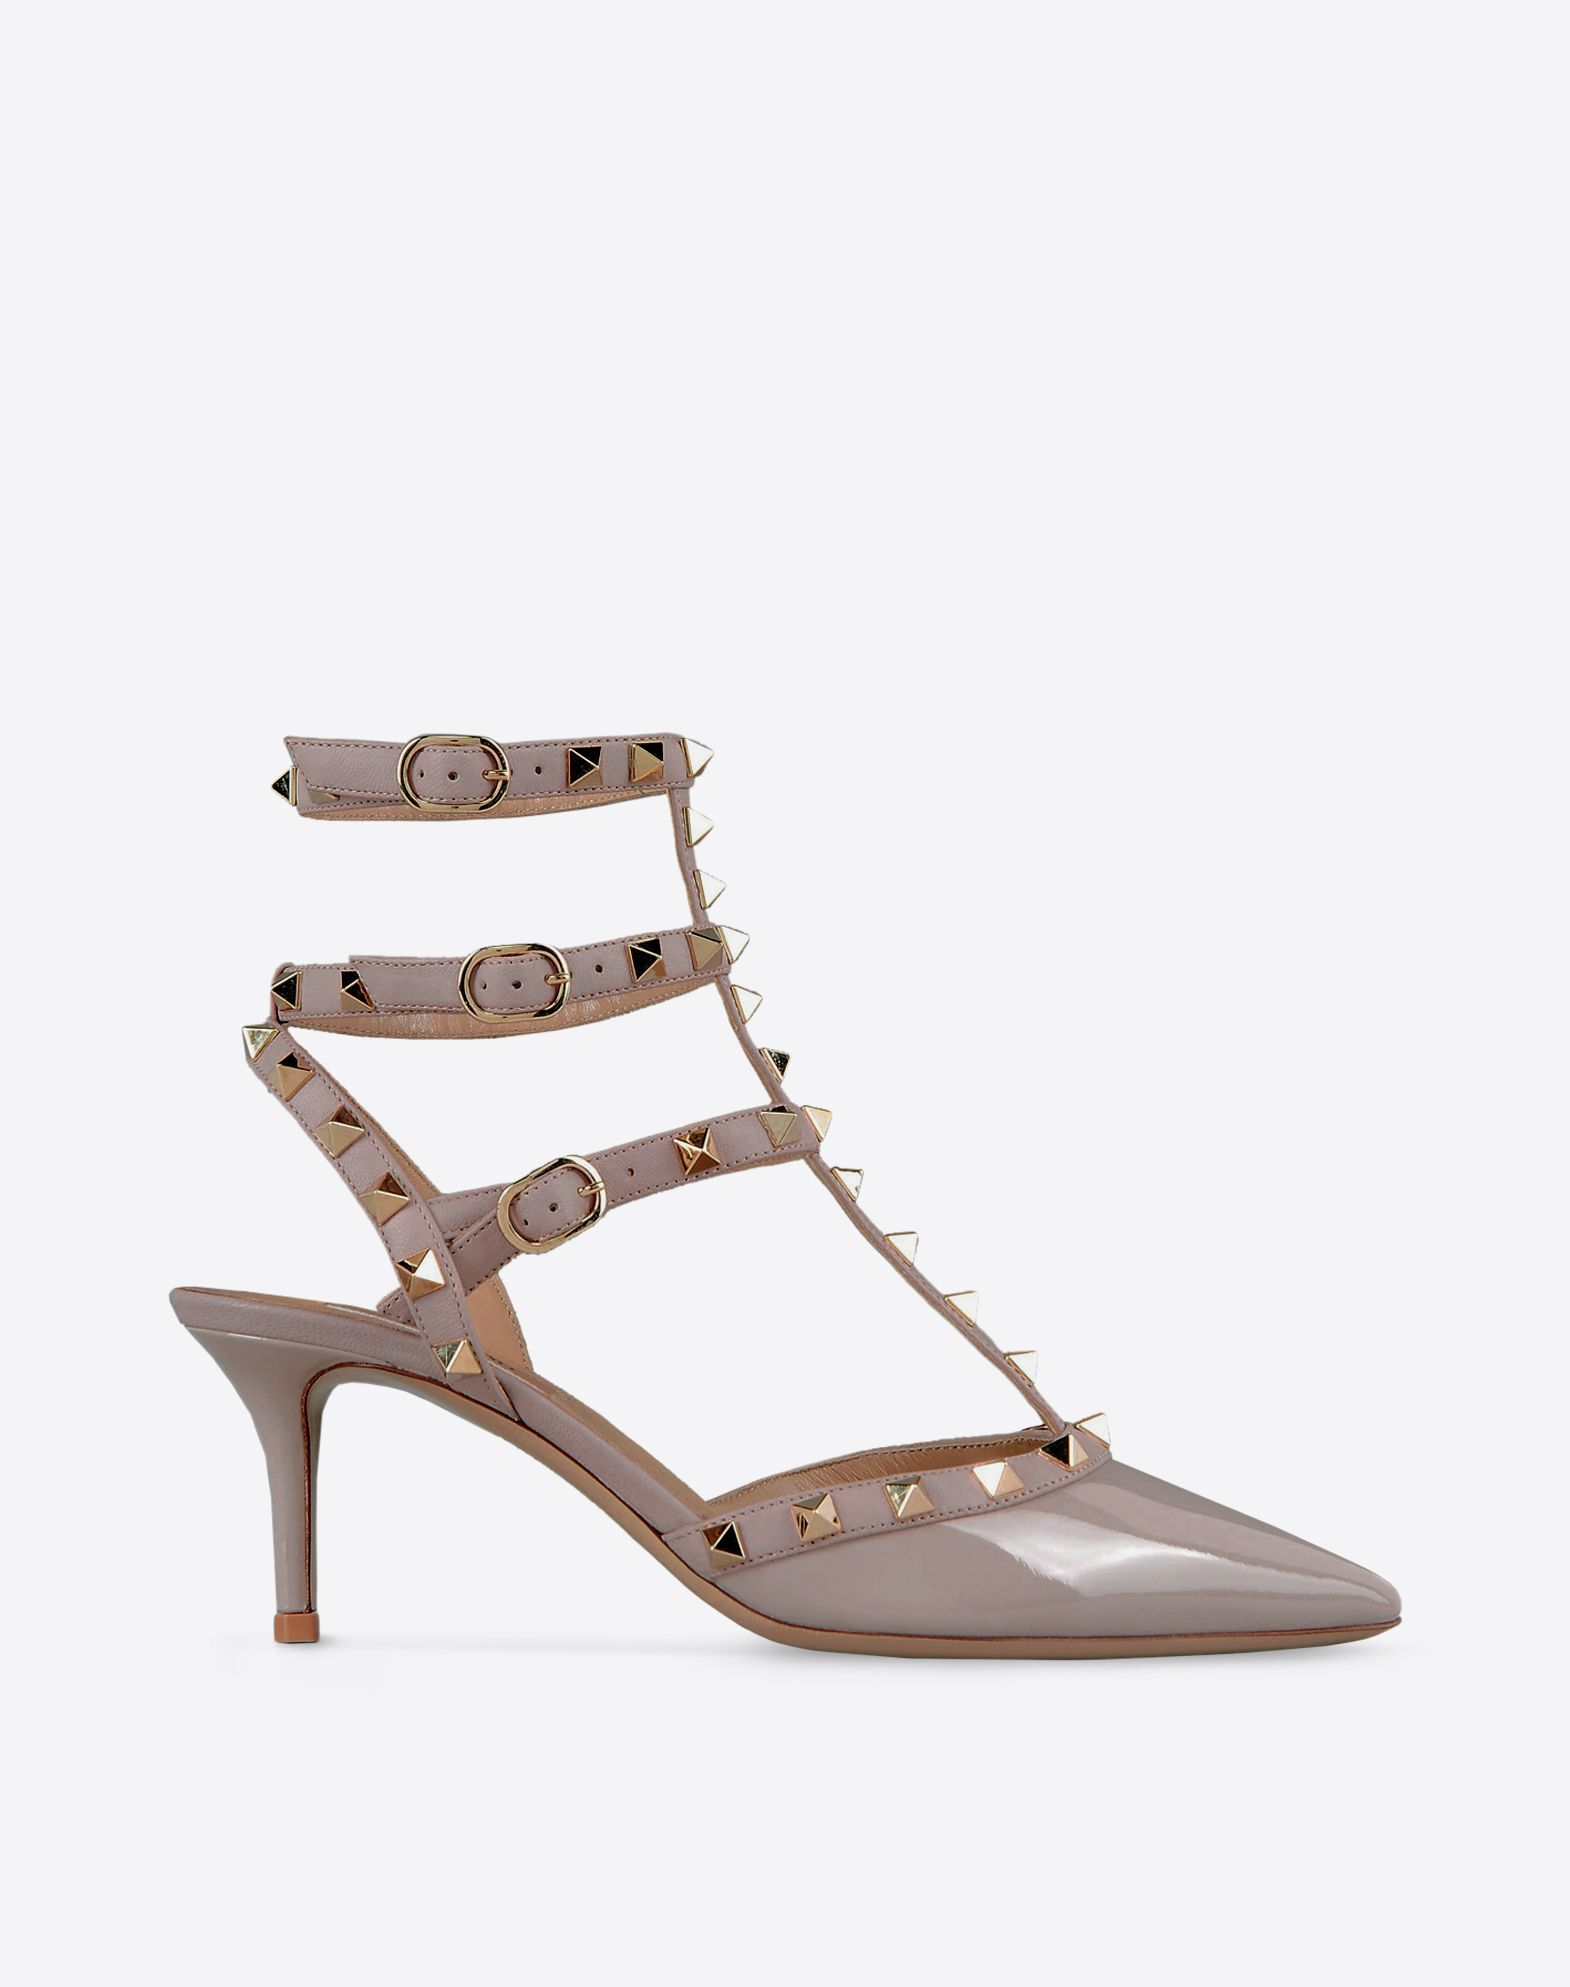 Valentino rockstud   Clothes   accessories   Pinterest   Shoes ... e8dc13ad26